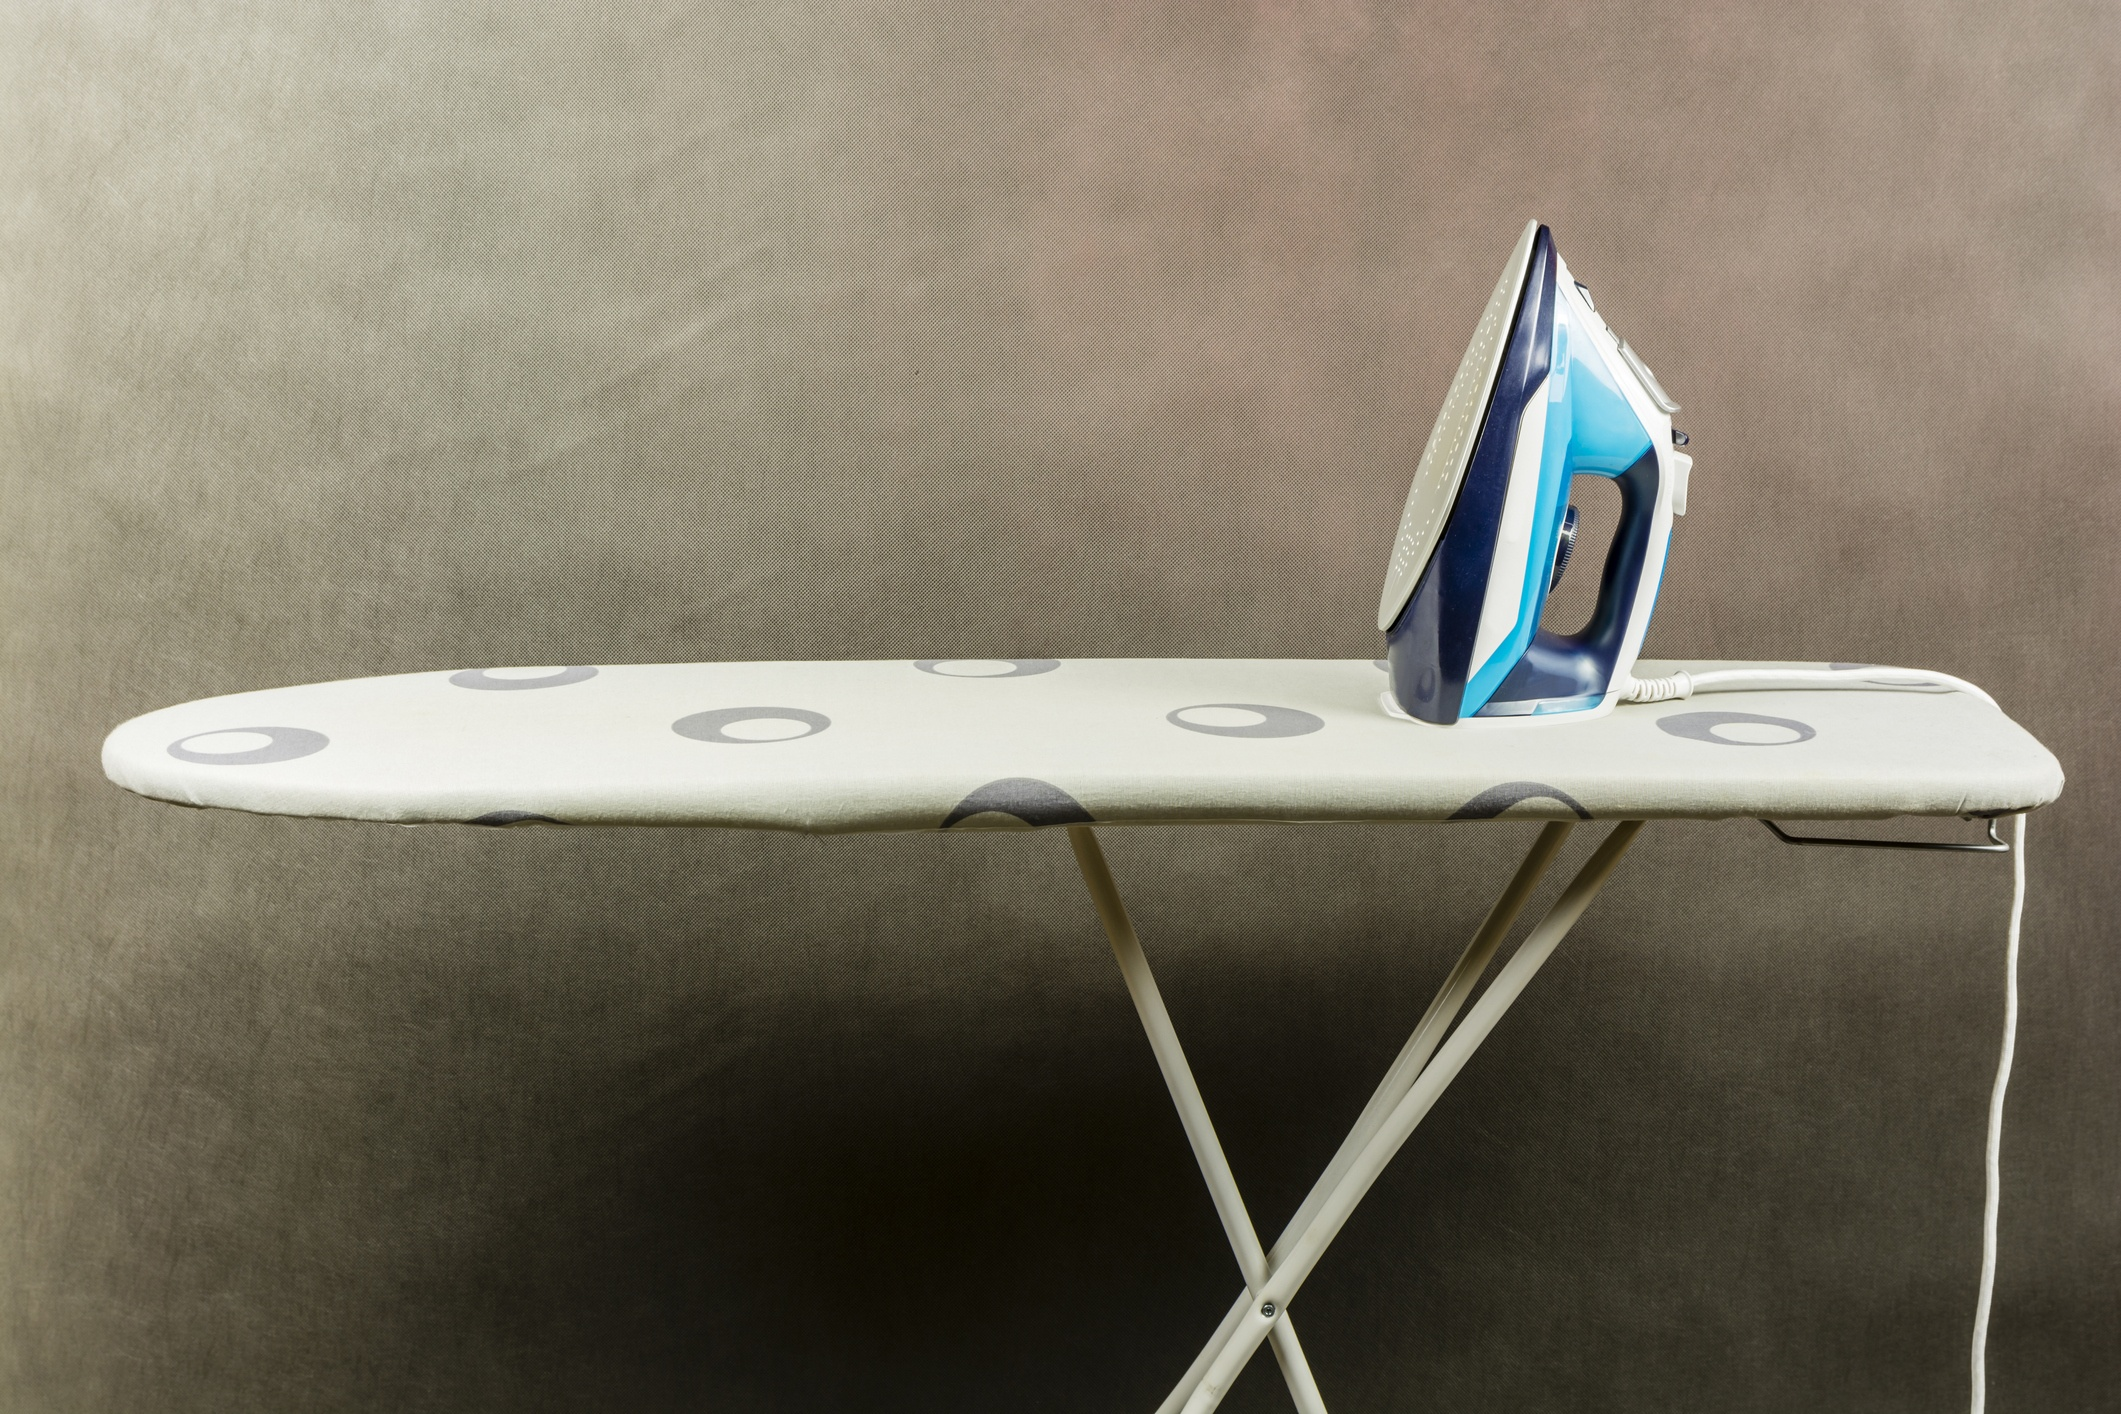 Clothes iron on the ironing board.